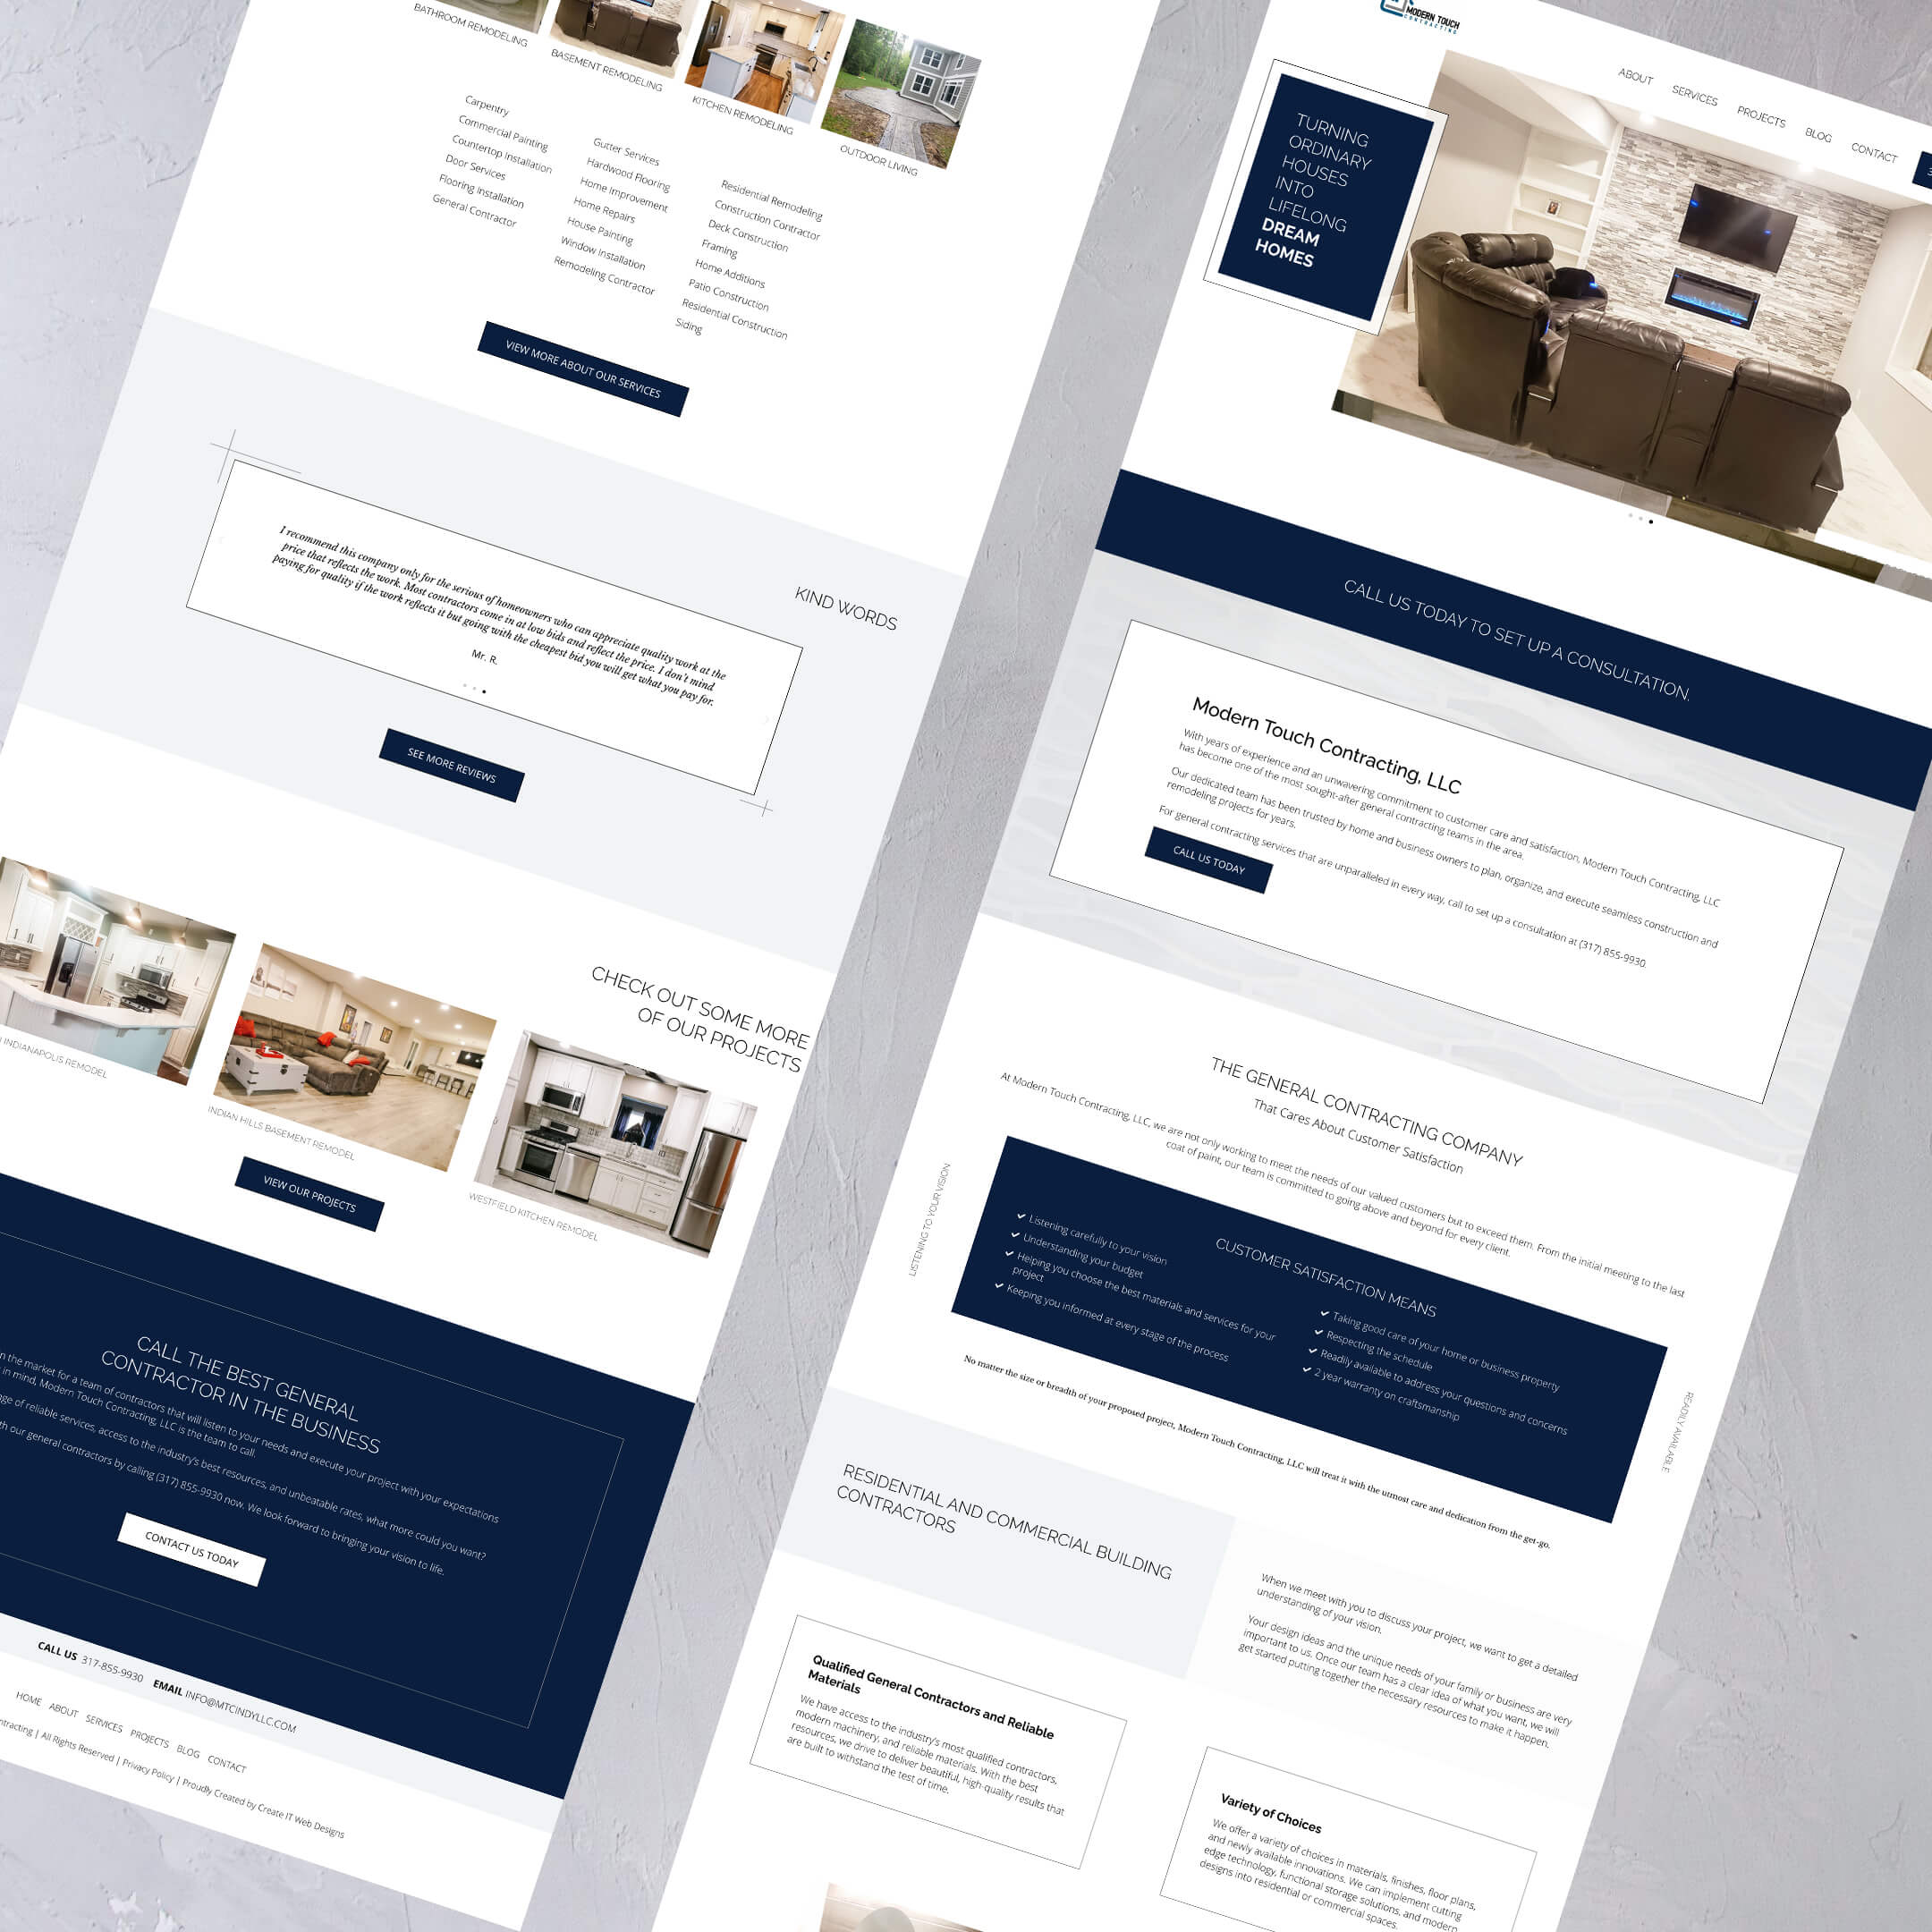 Modern Touch Contracting of Indianapolis - Construction Home website page